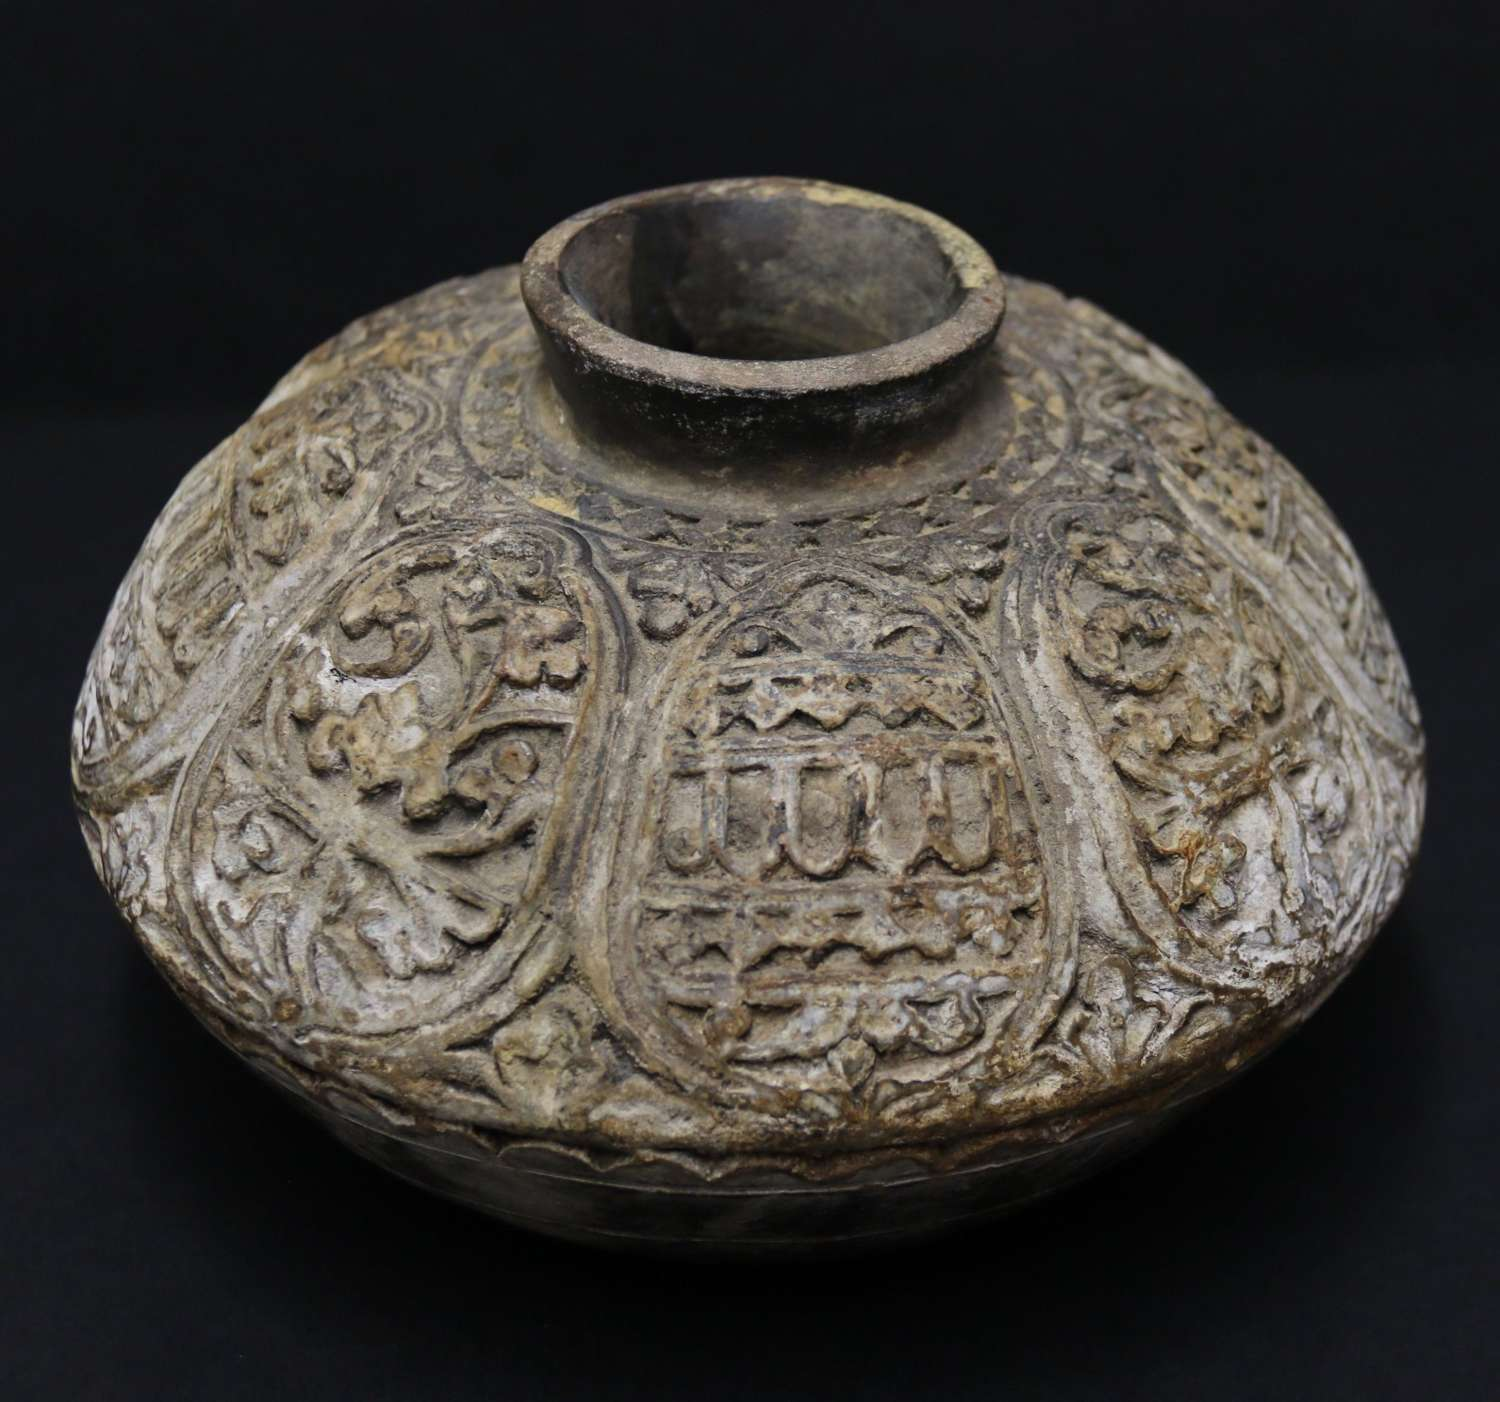 A Rare 17th Century Indian Incised Pottery Vase